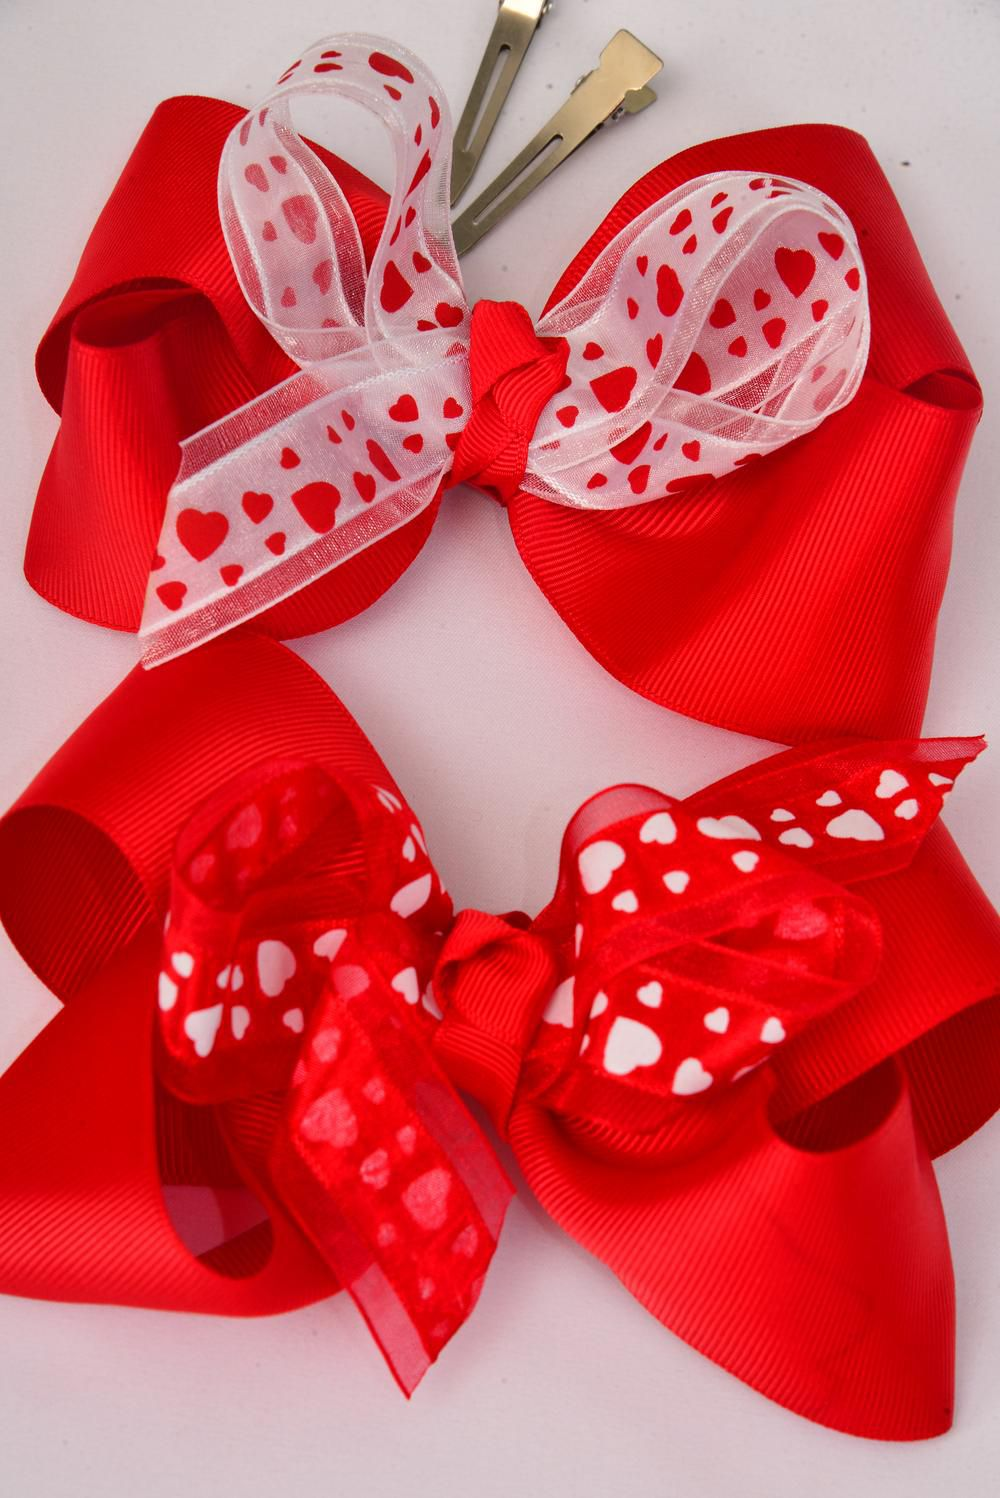 "Hair Bow Extra Jumbo Red Hearts 6""x 5"" Alligator Clip Grosgrain Bow-tie Satin Heart Print/DZ **Alligator Clip** Size-6""x 5"" Wide,6 of each Color Asst,Clear Strip & UPC Code"